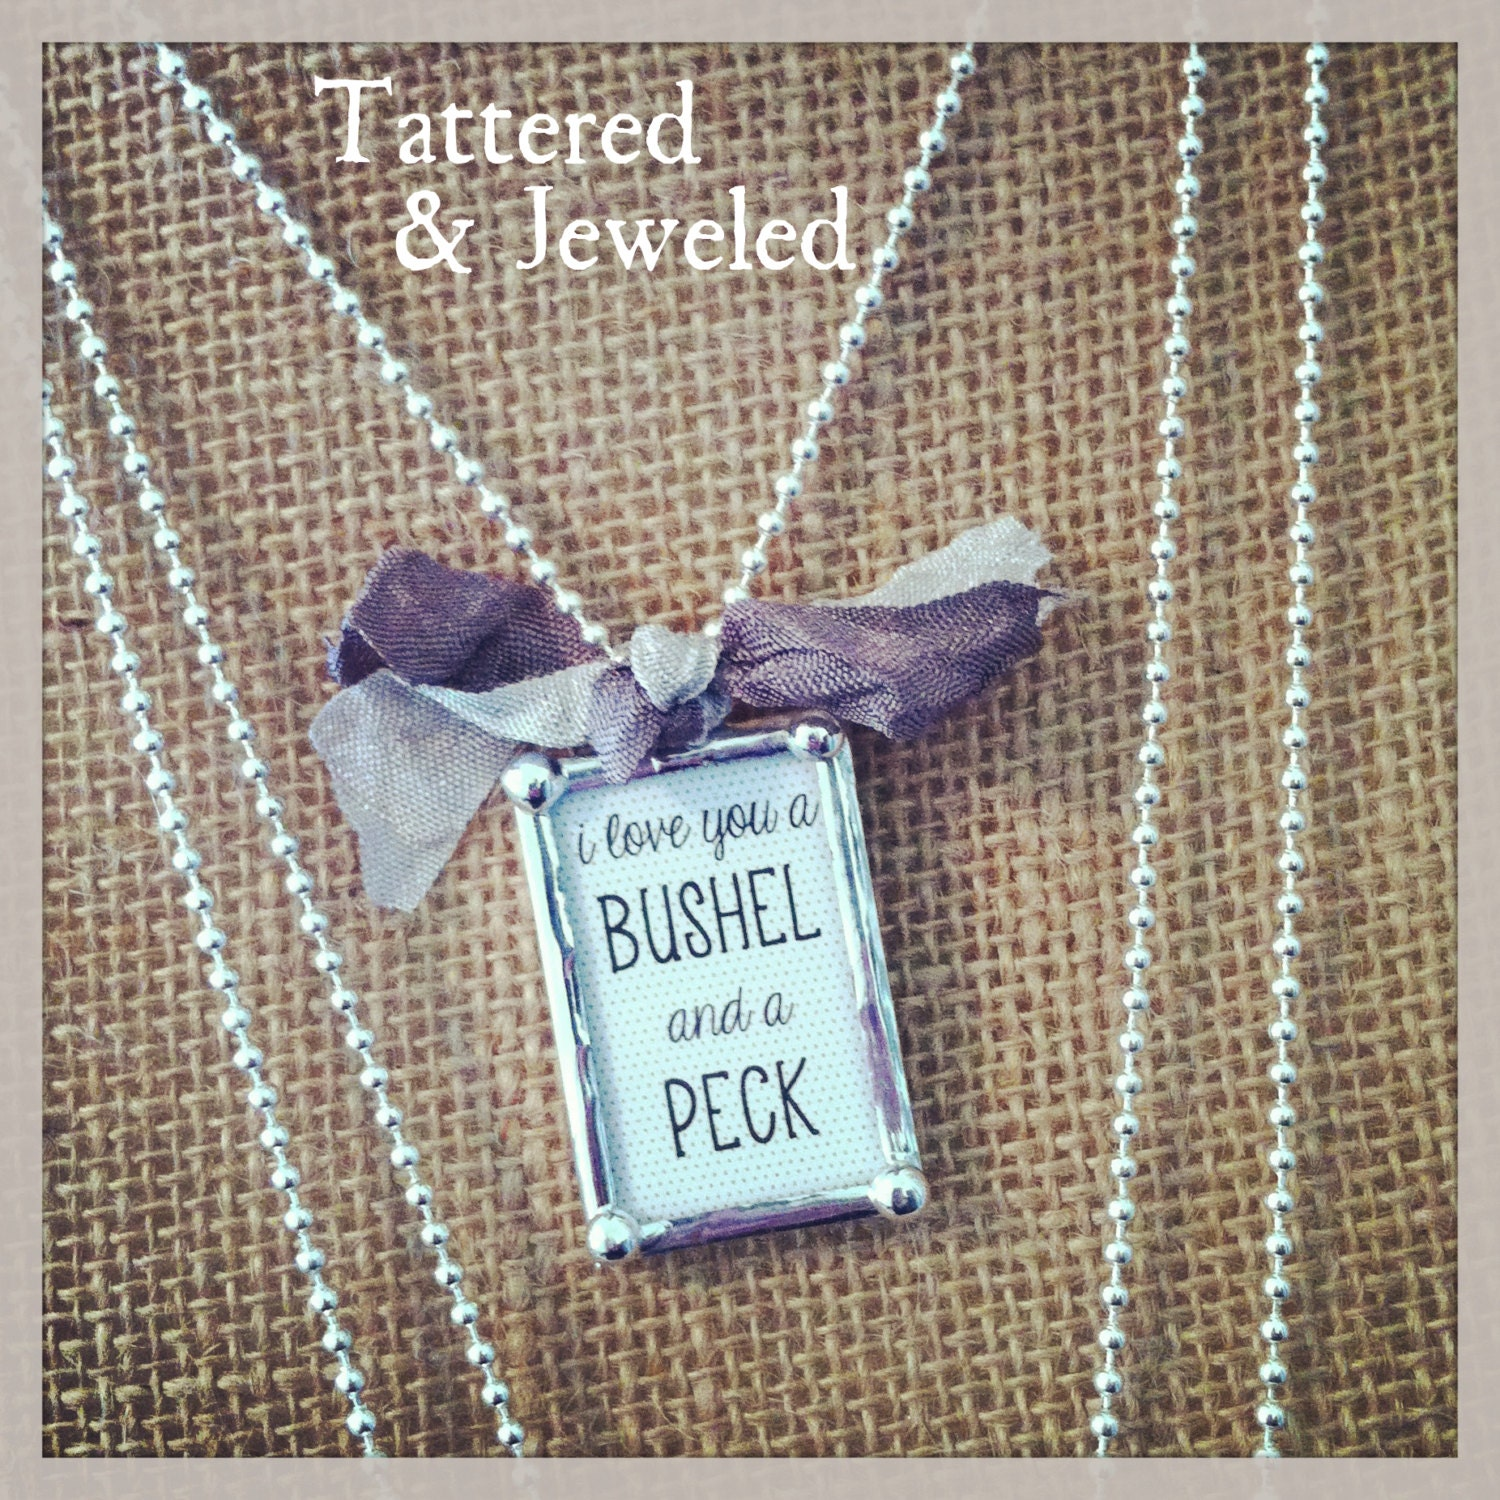 I Love You A Bushel And A Peck Necklace: Unavailable Listing On Etsy